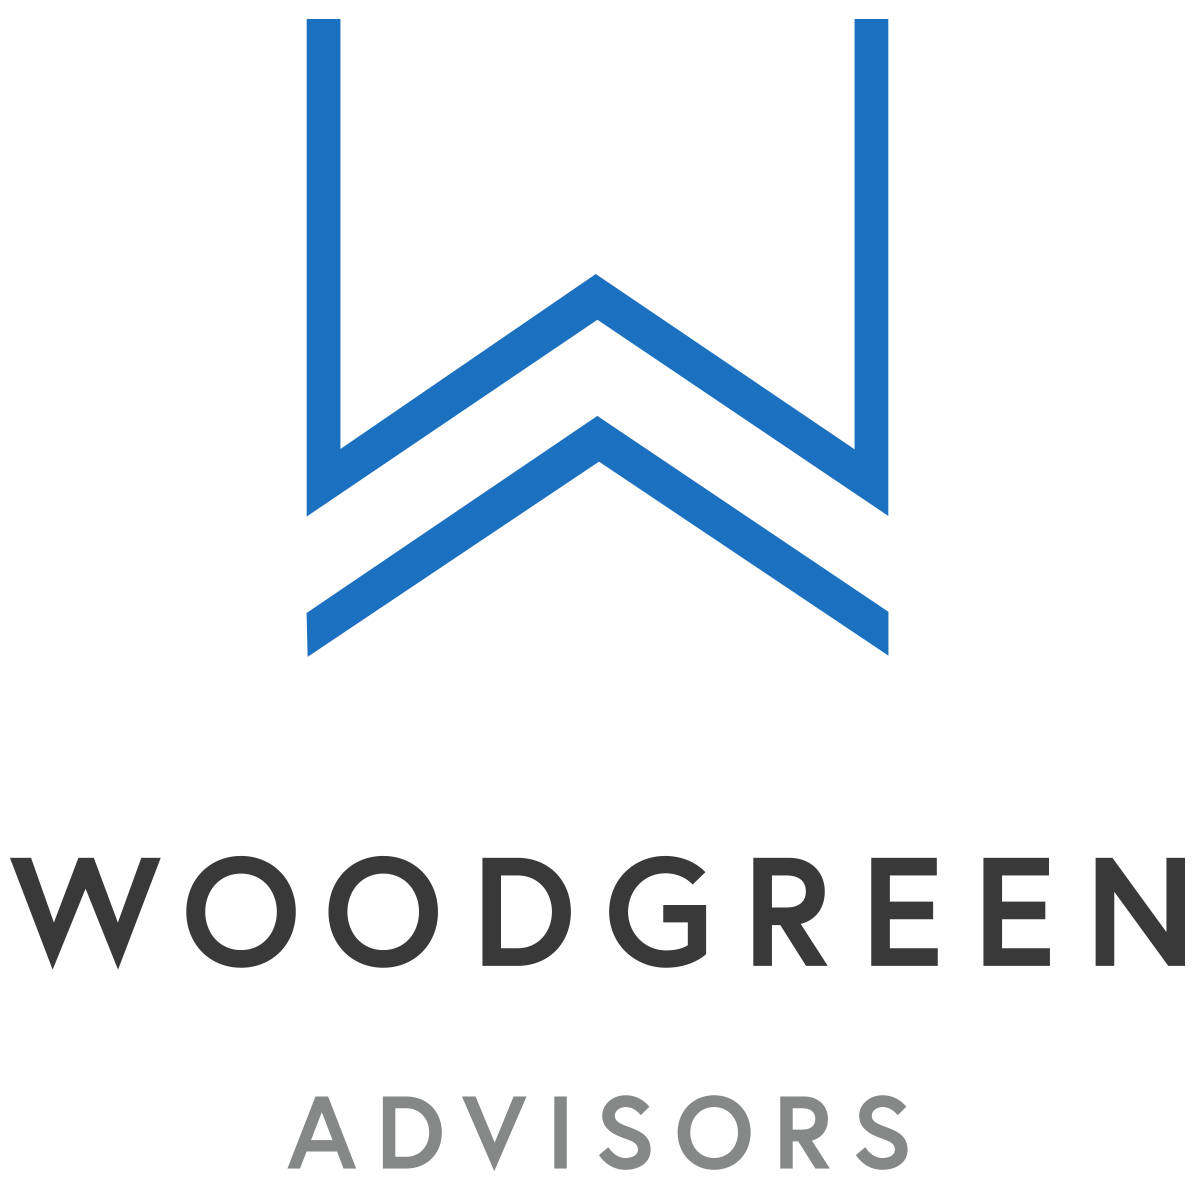 Woodgreen Advisors